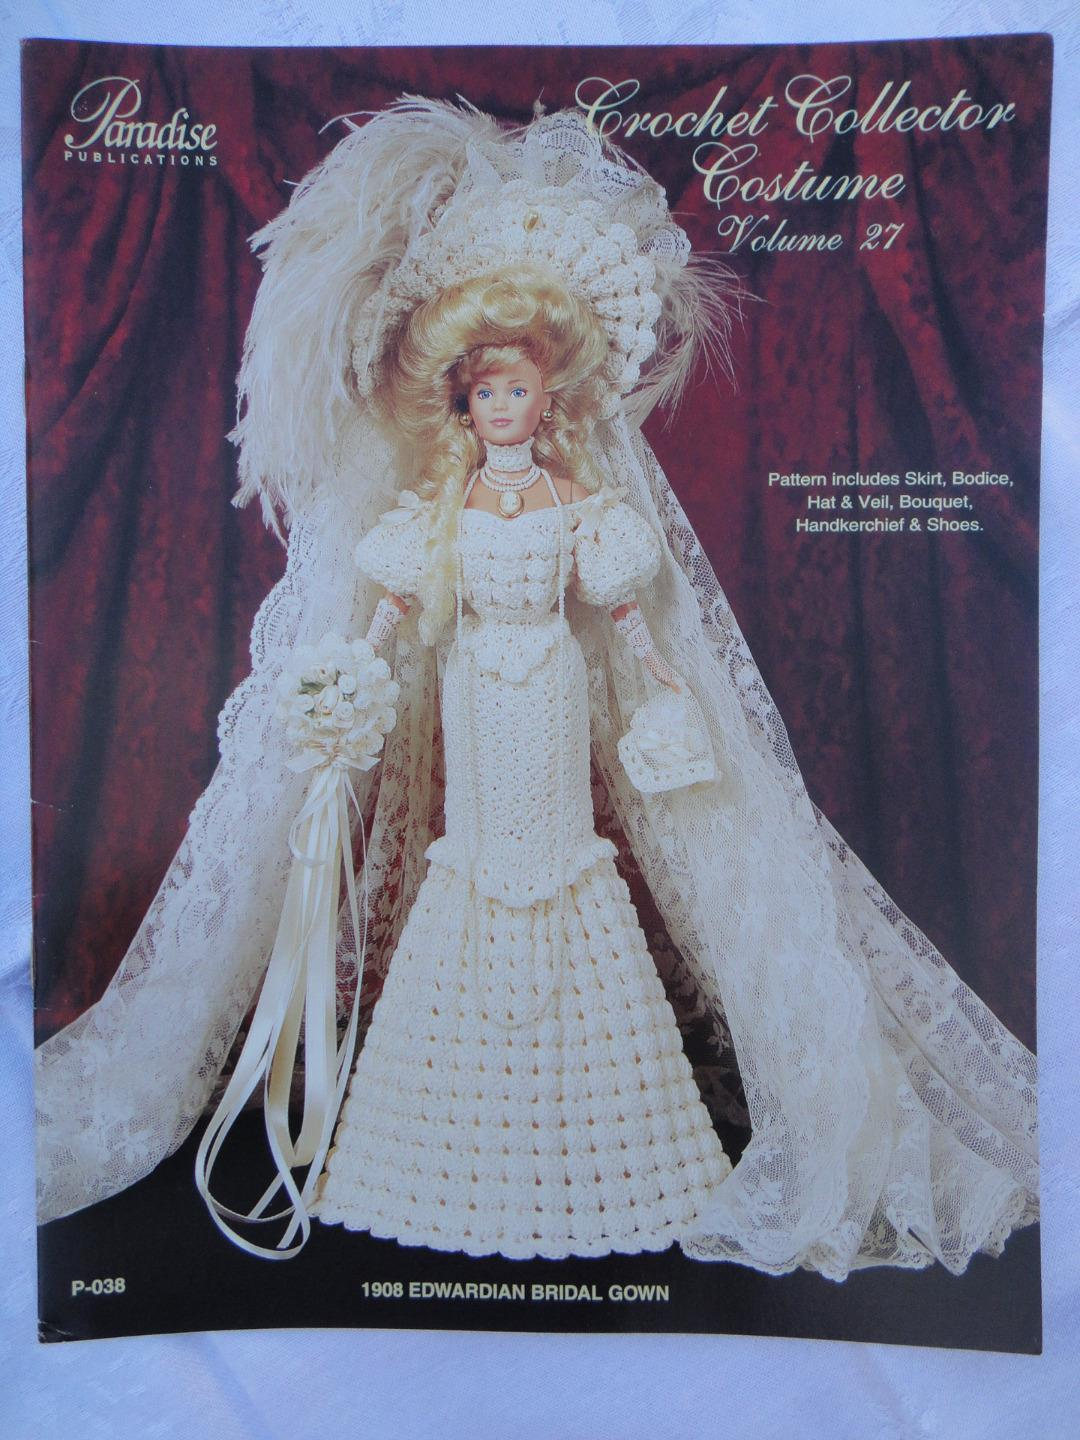 "Primary image for Paradise Crochet 11 1/2"" Doll Costume Pattern 1908 EDWARDIAN BRIDAL GOWN P-038"